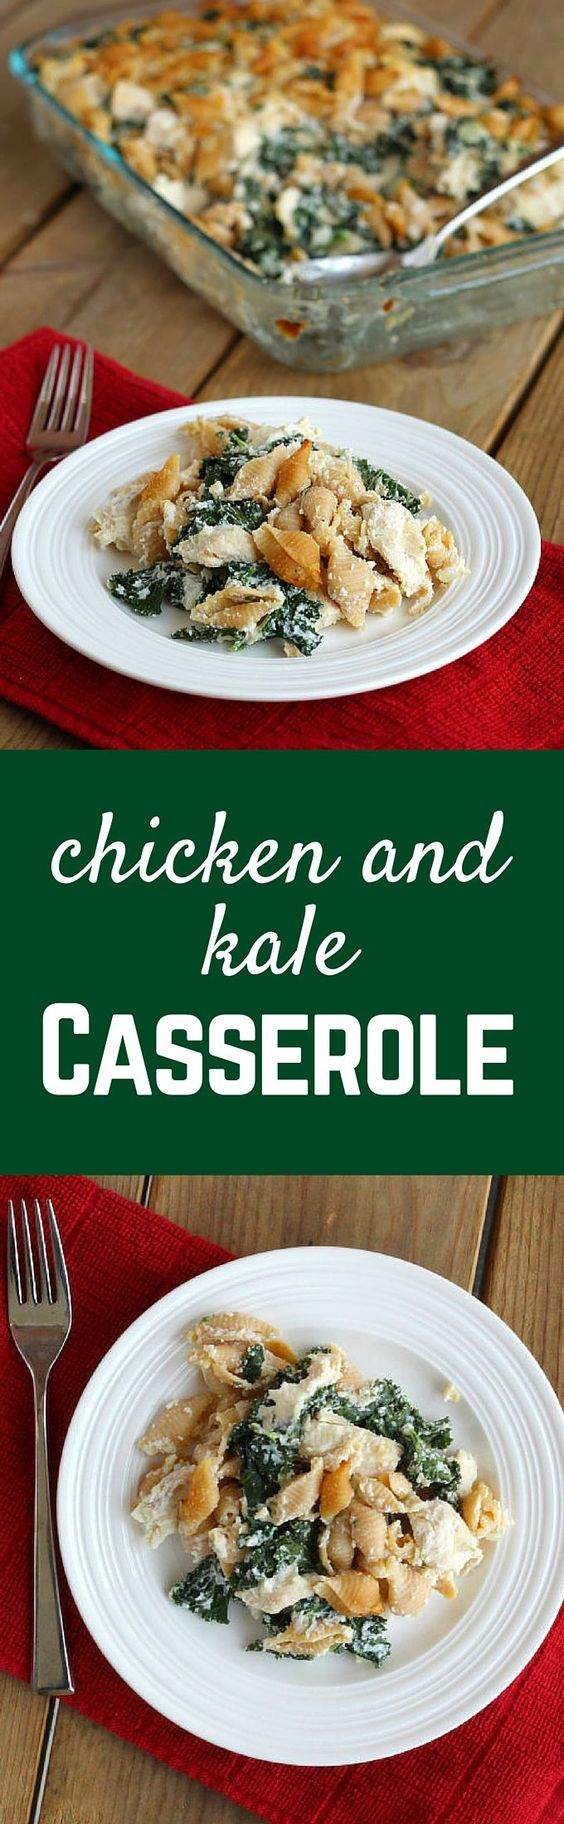 This Chicken and Kale Casserole is perfect if you want an easy ...